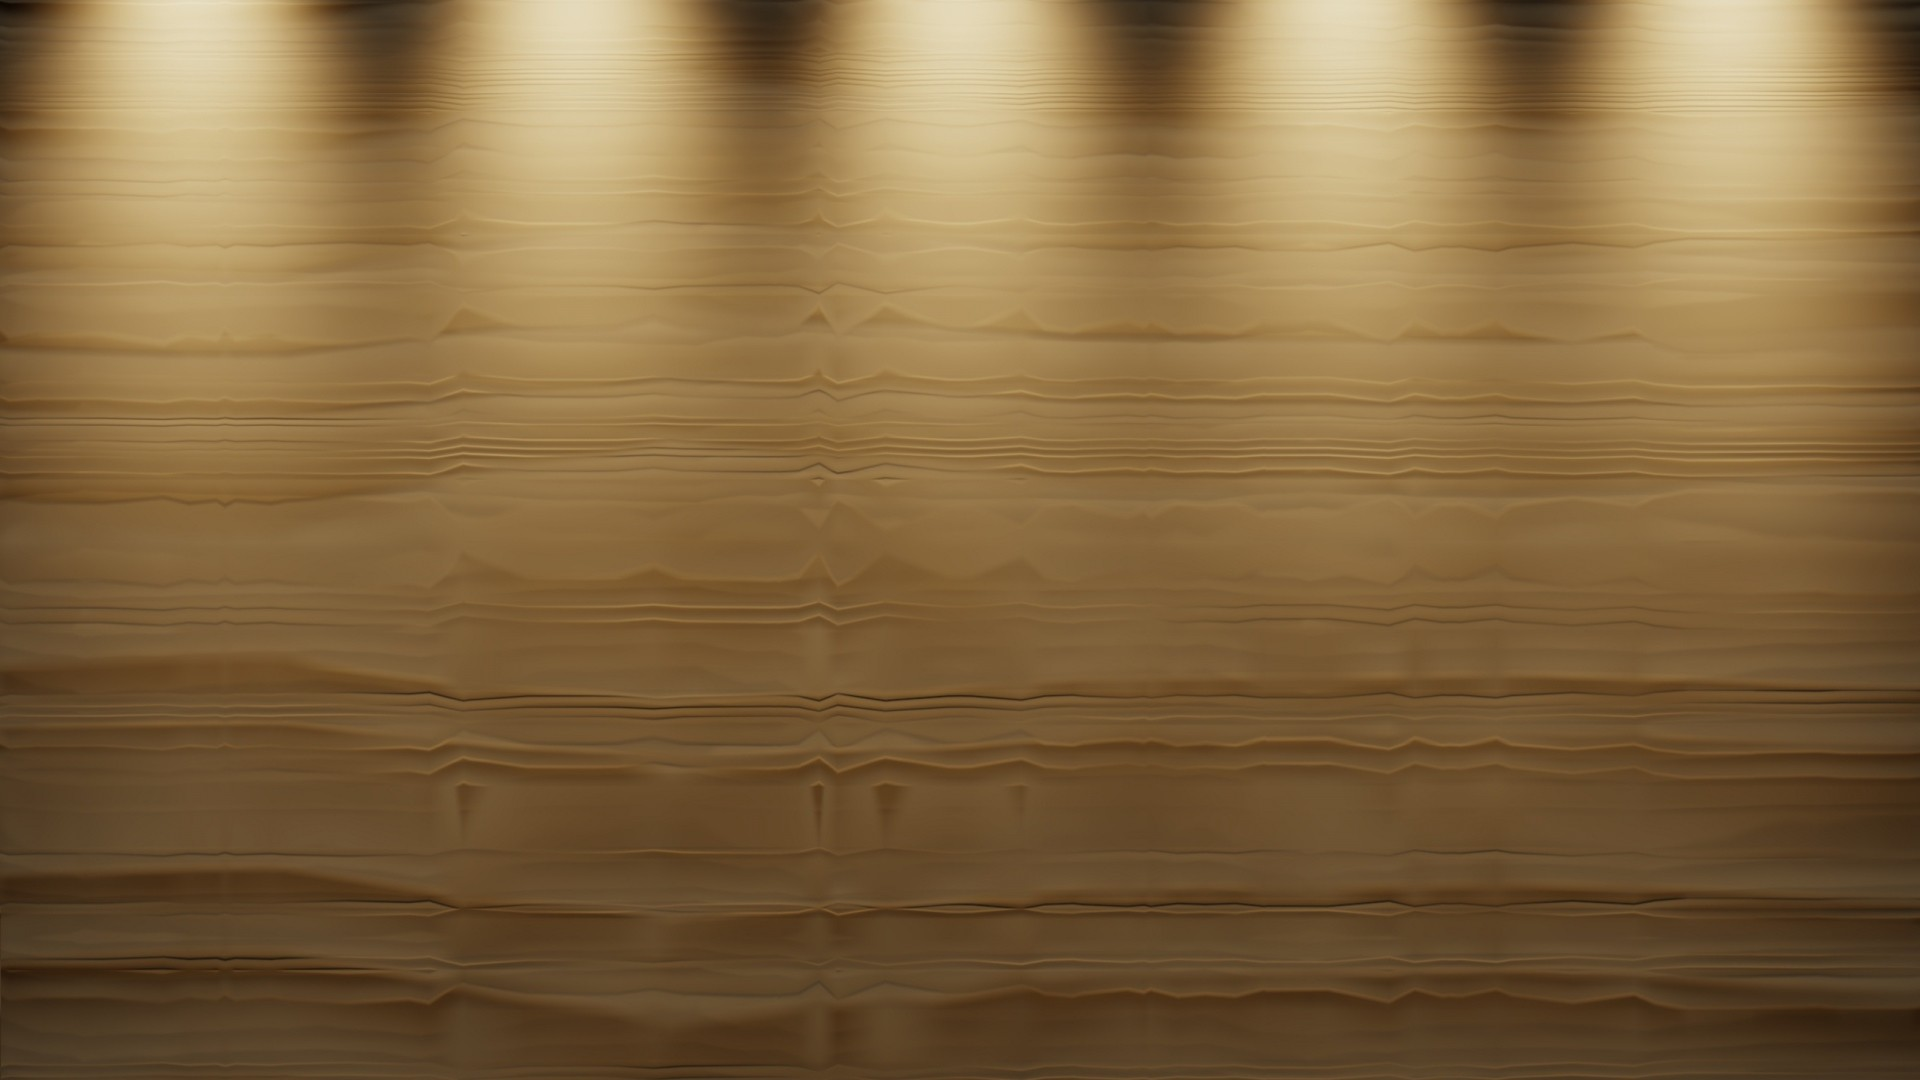 1920x1080 surface, wood, light